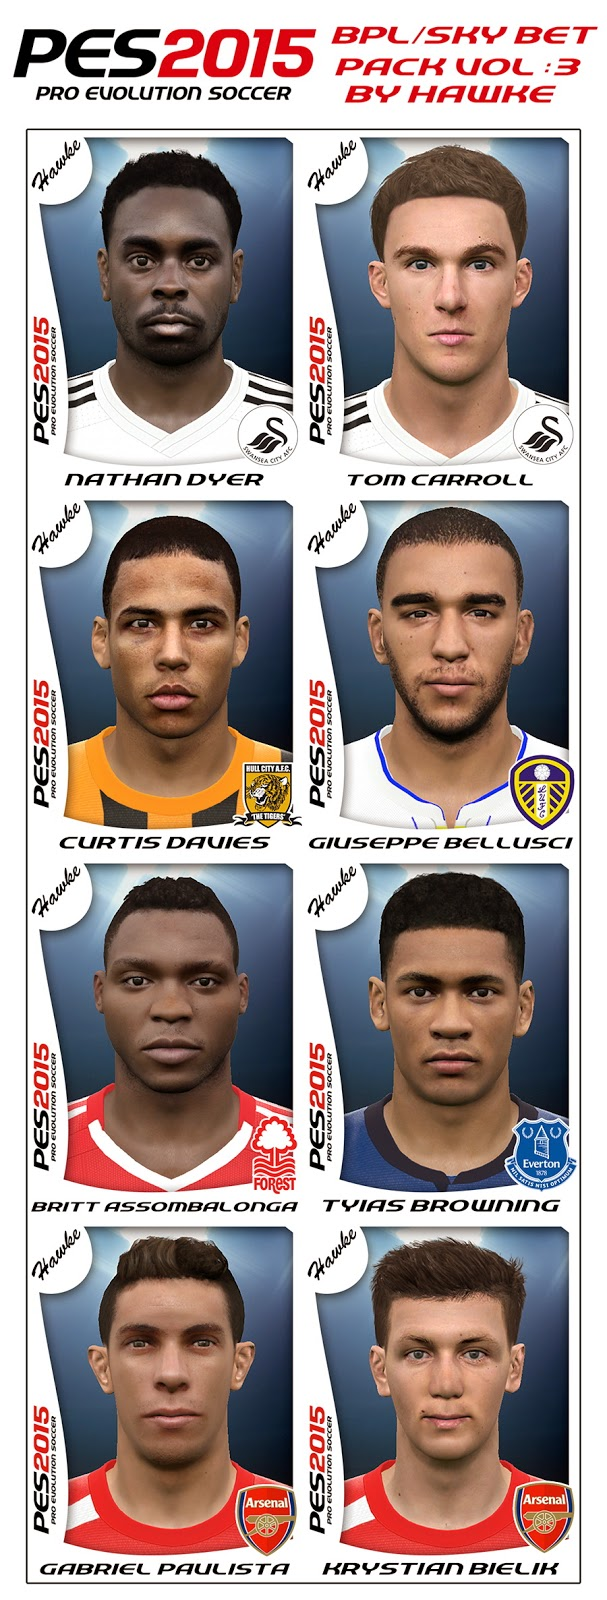 PES 2015 BPL / Sky Bet FacePack Volume : 3 by Hawke